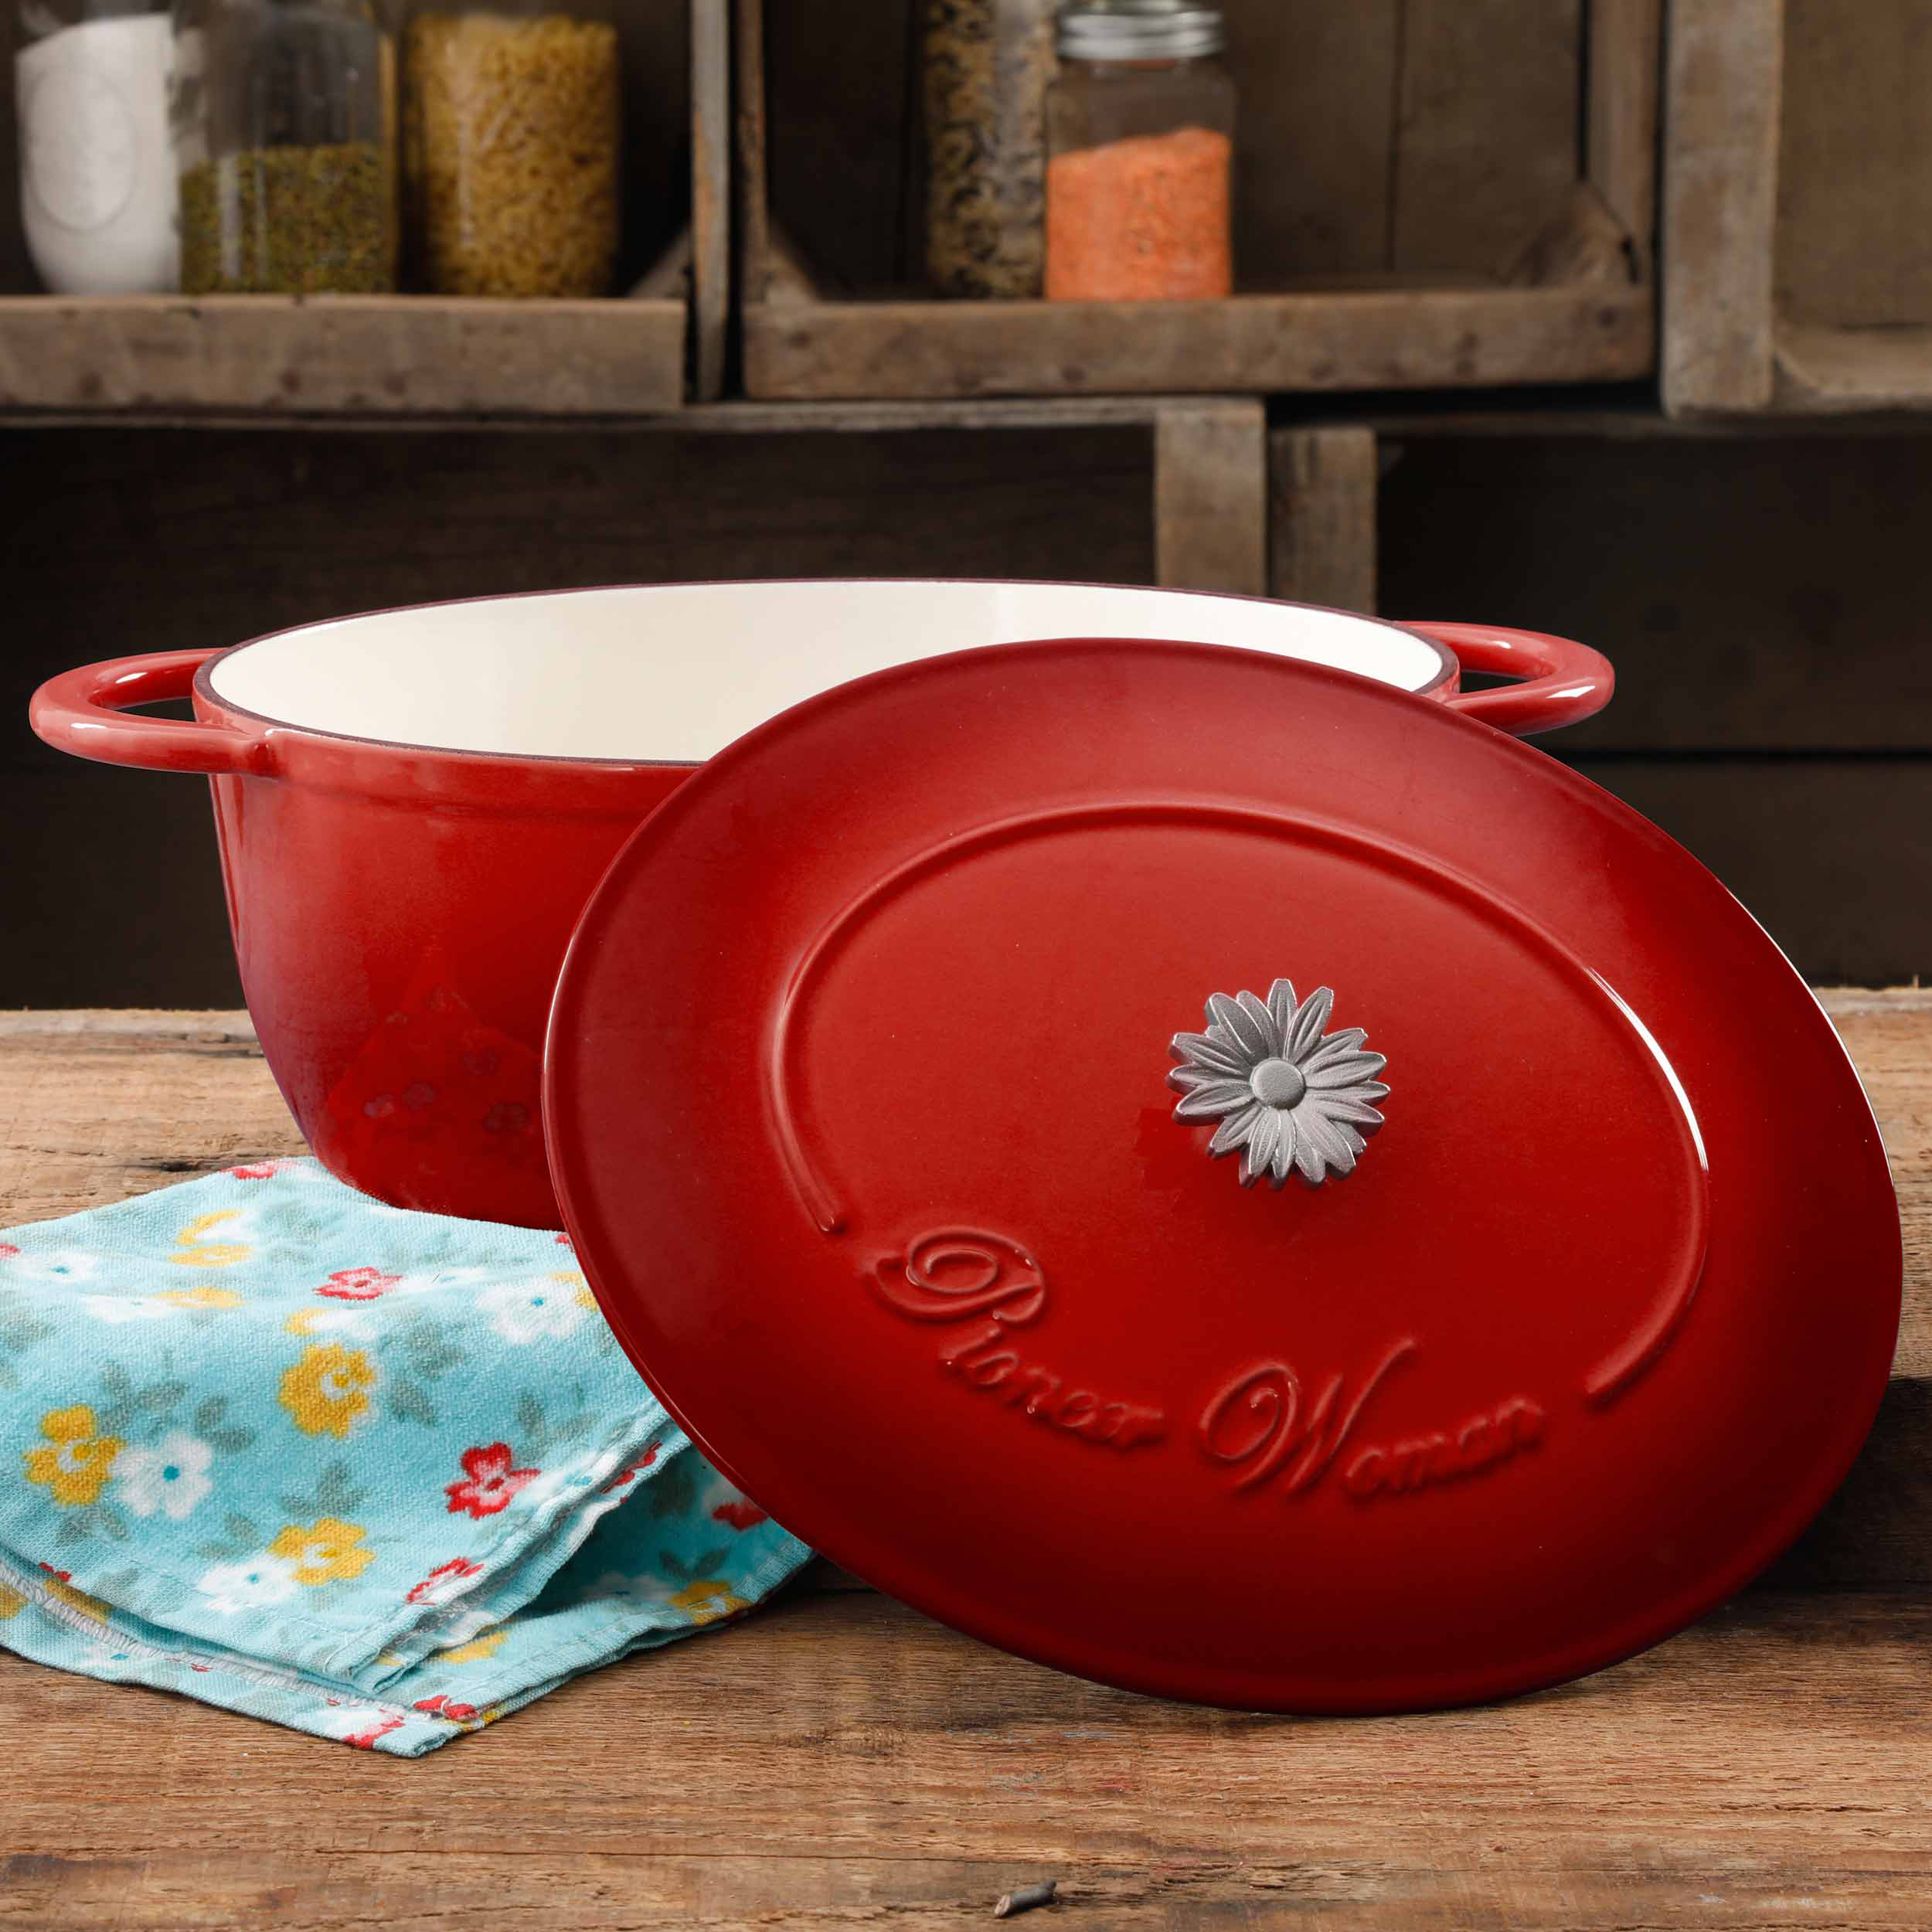 The Pioneer Woman Timeless Beauty 7-Quart Dutch Oven with Daisy and Bakelite Knob by Gibson Overseas Inc.